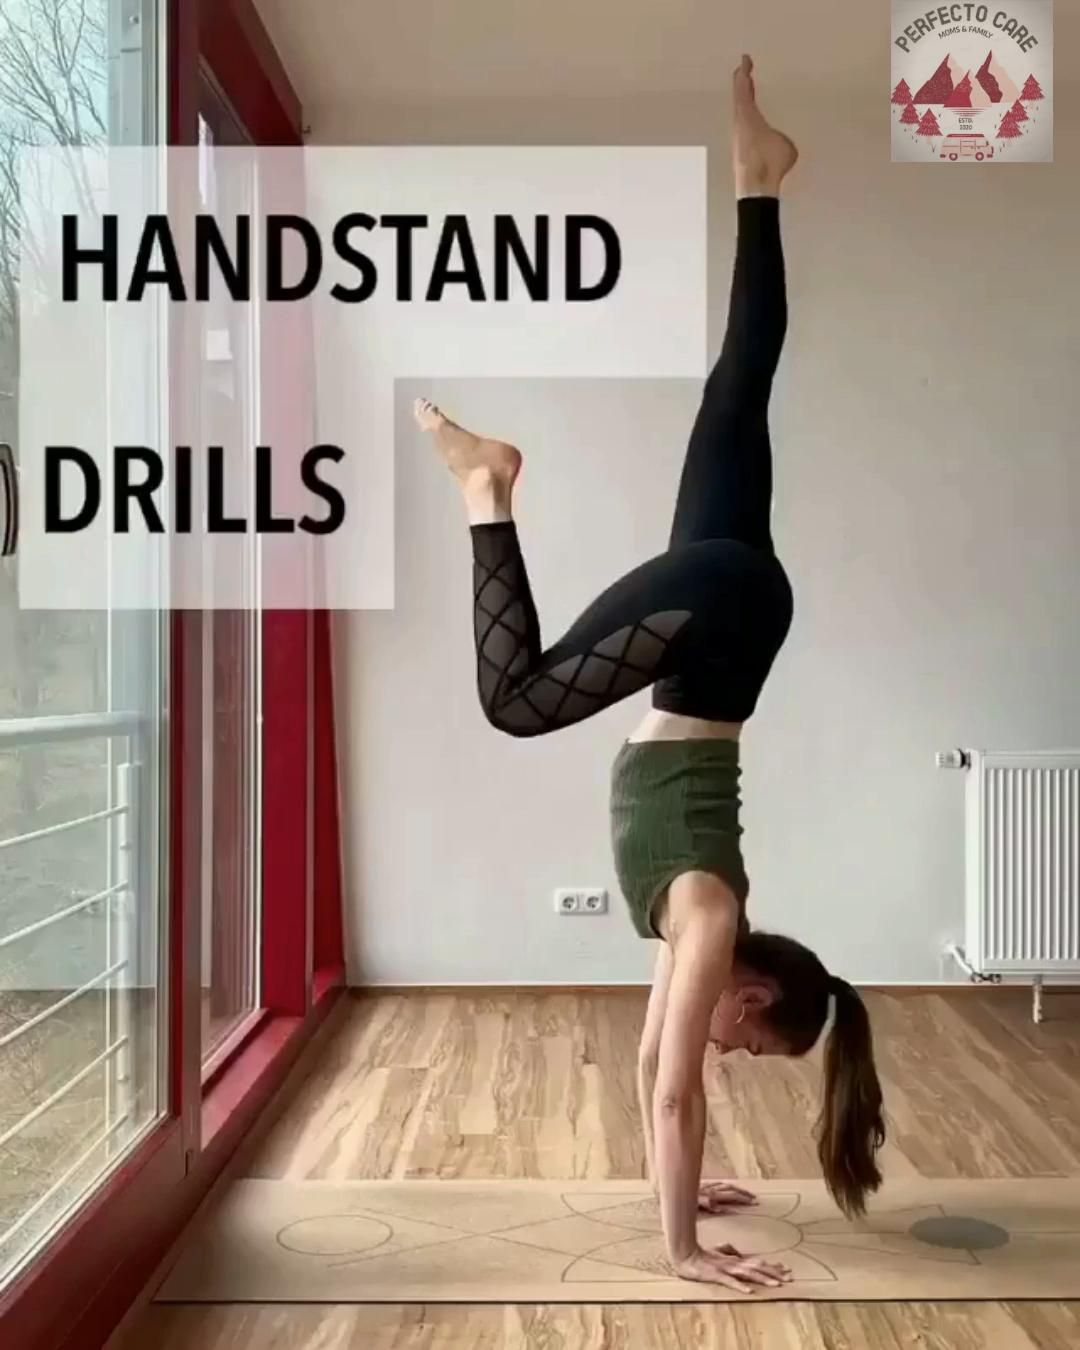 LEARN HOW TO DO 🤸🏻♀HANDSTAND DRILLS🤸🏻♀ YOGA #1